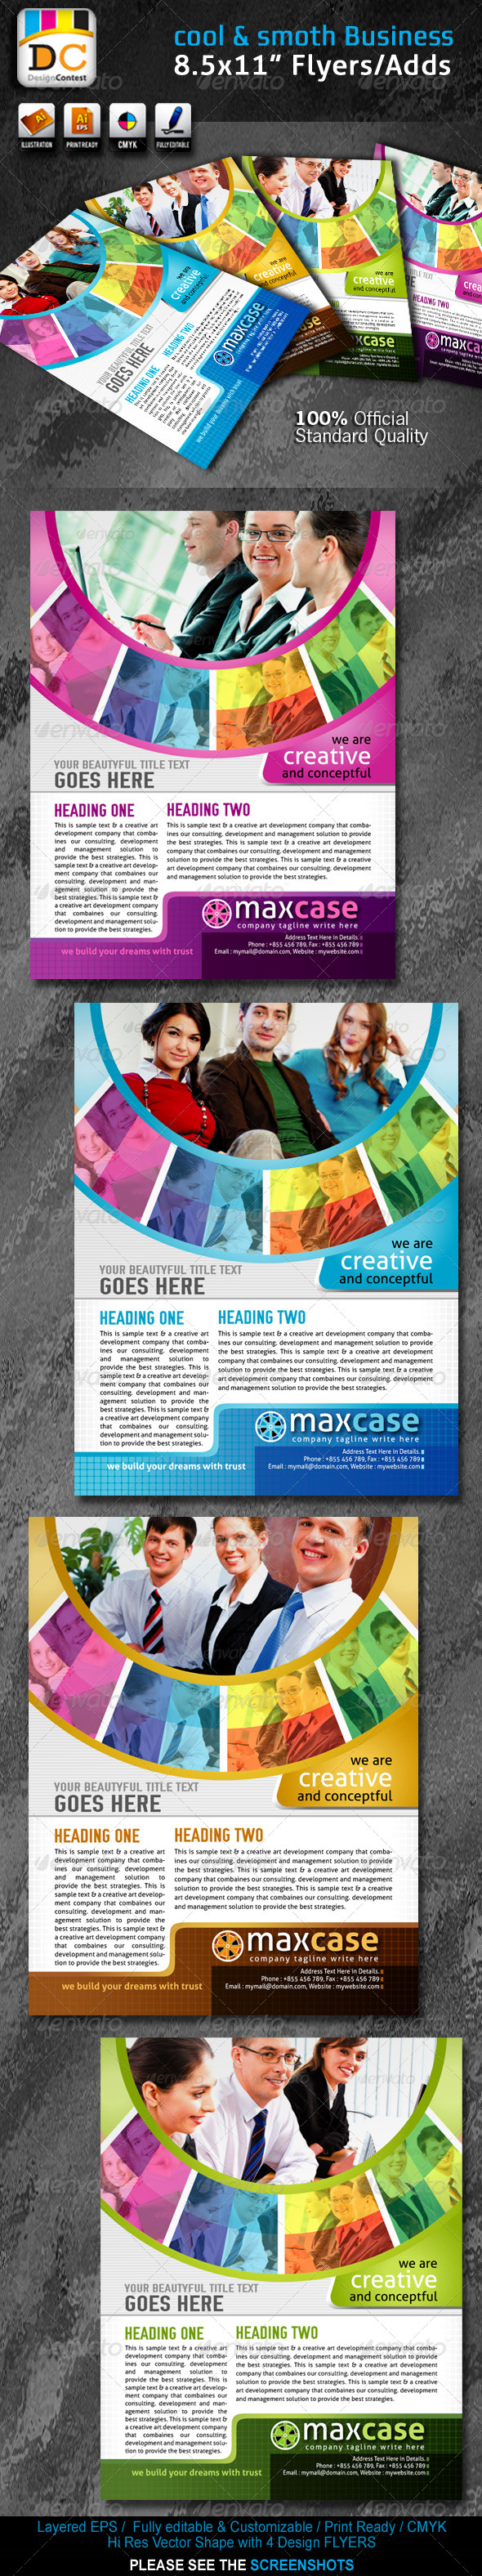 Cool & Smooth Corporate Business Flyers Adds